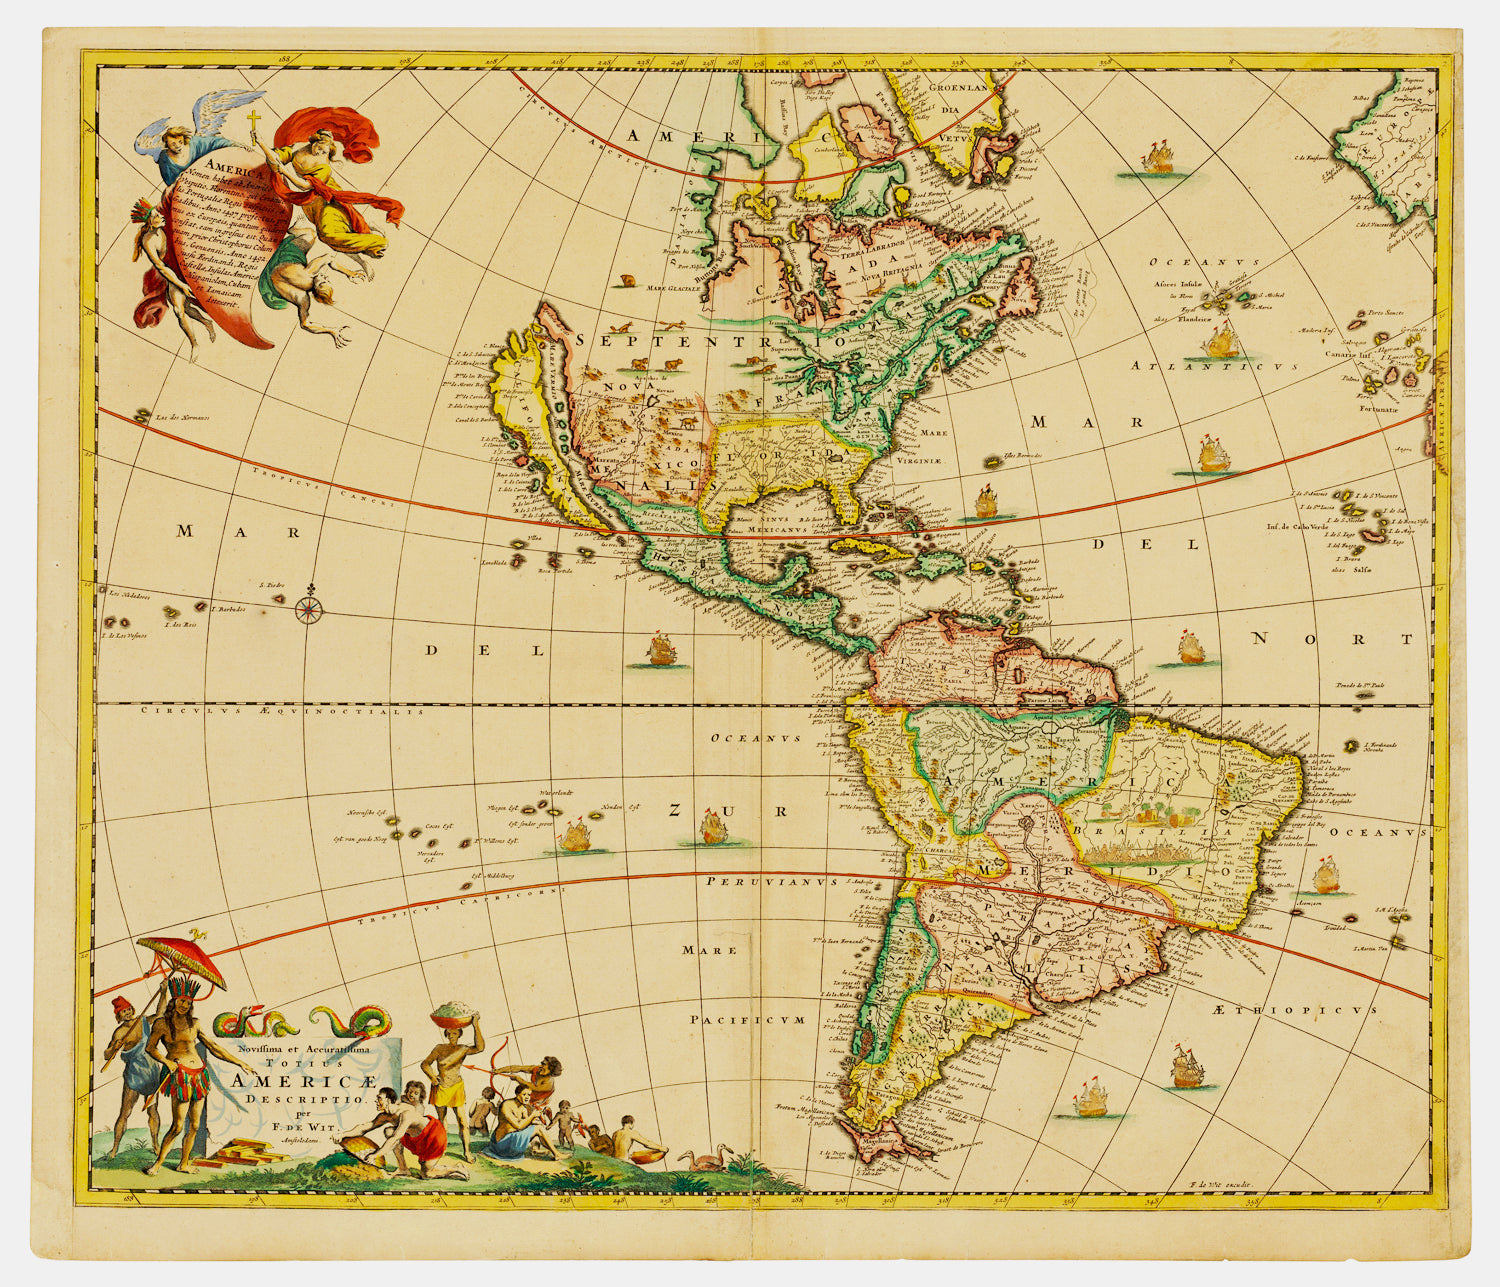 1670 Frederick De Wit Antique Map Of America California Island 5 Great Lakes St Ed